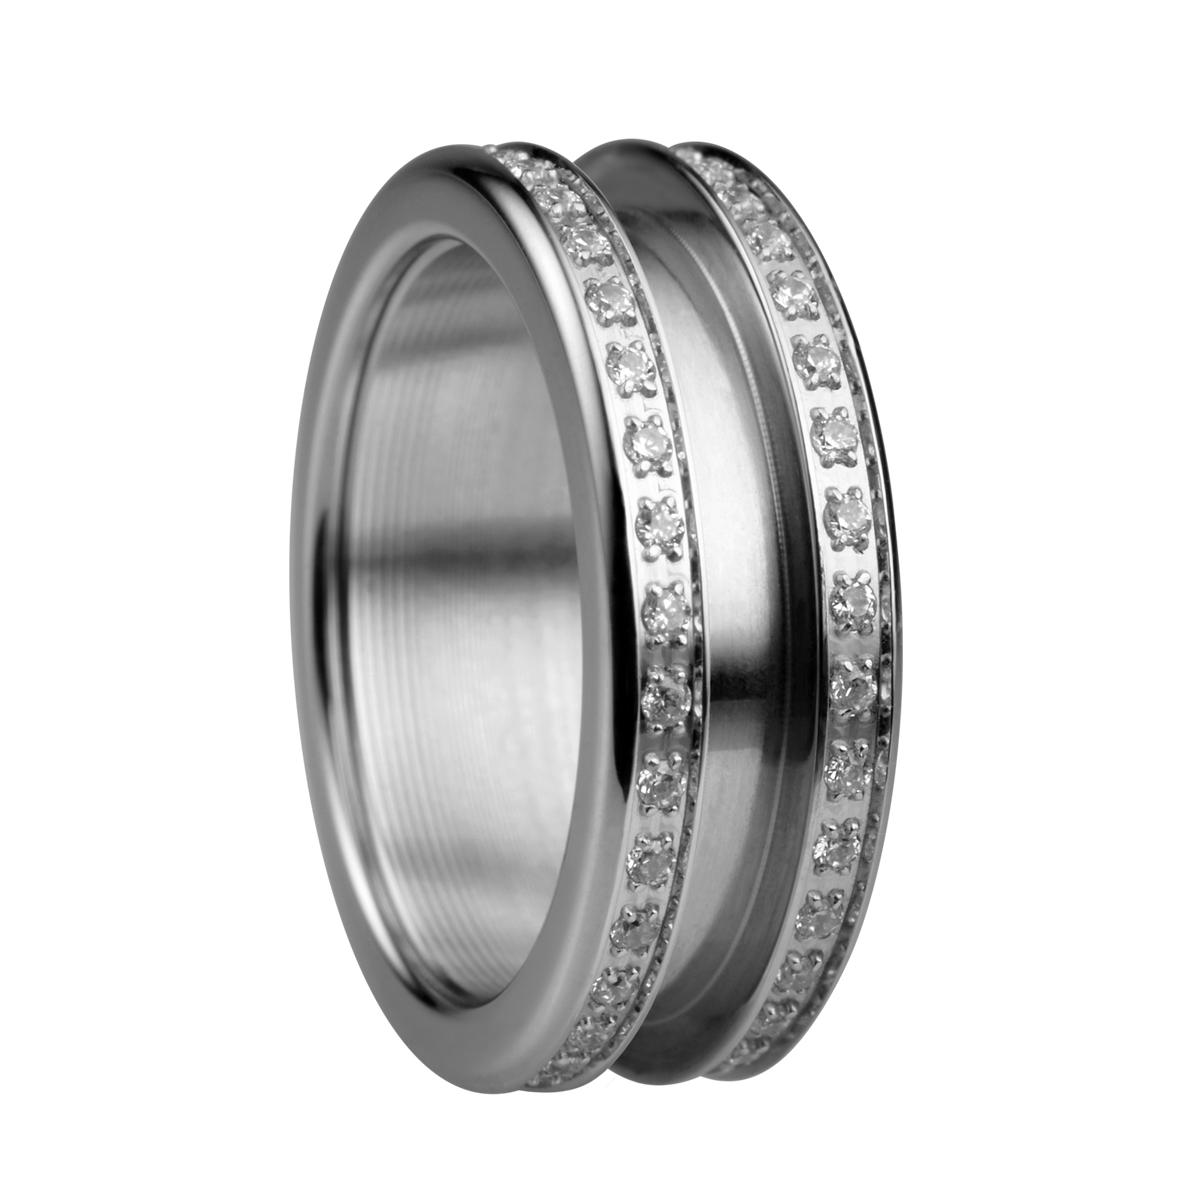 Bering Outer Ring 5231793 1